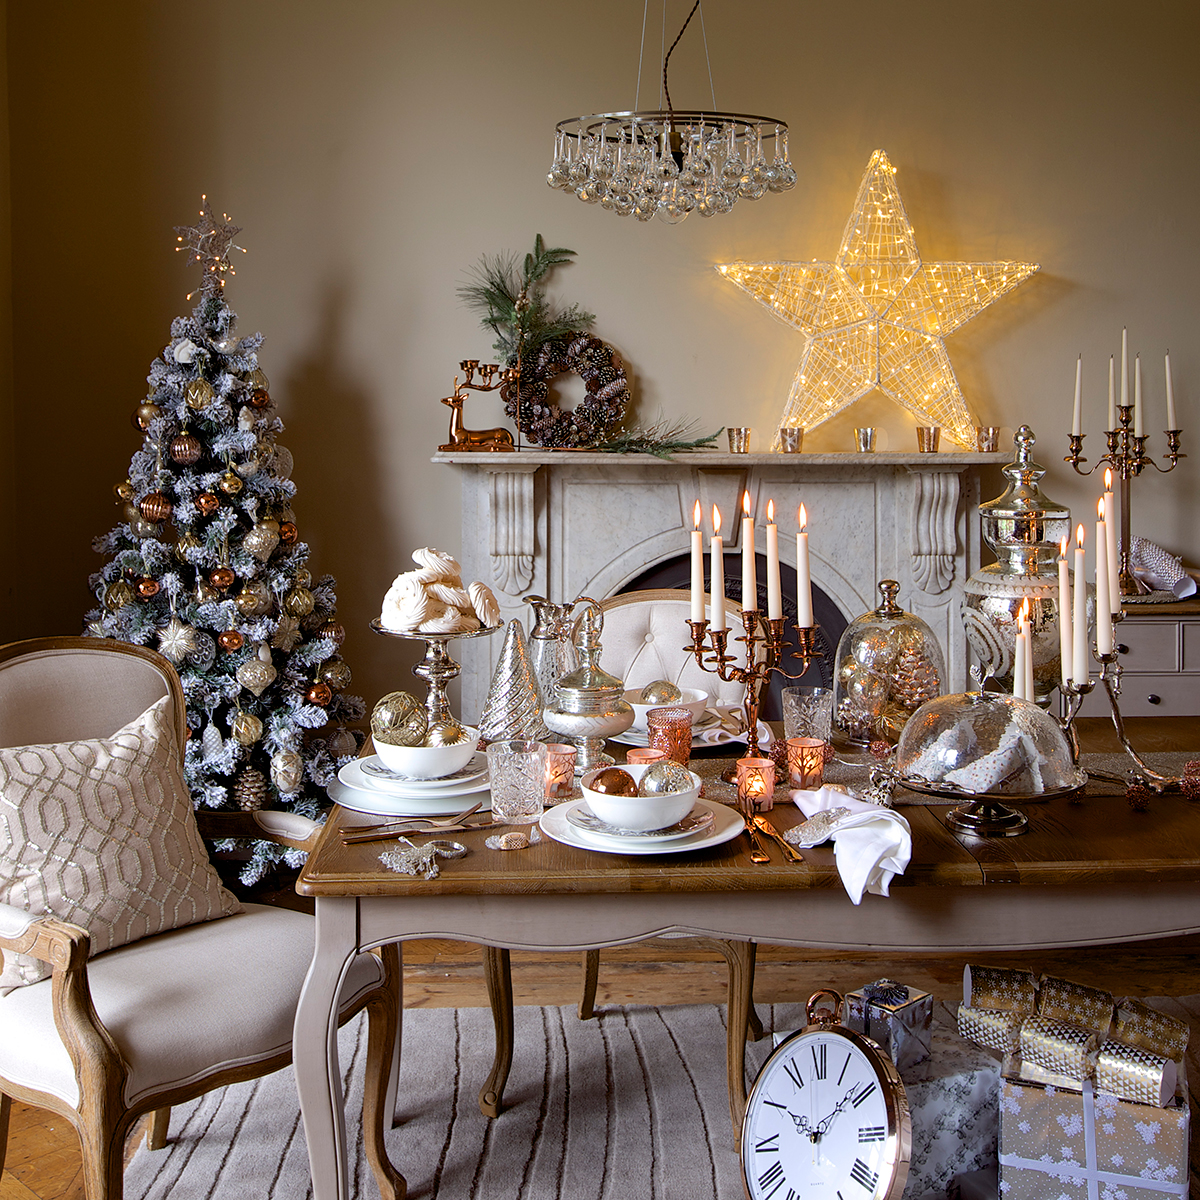 Christmas table decoration ideas for festive dining  Christmas decorations  Good Housekeeping